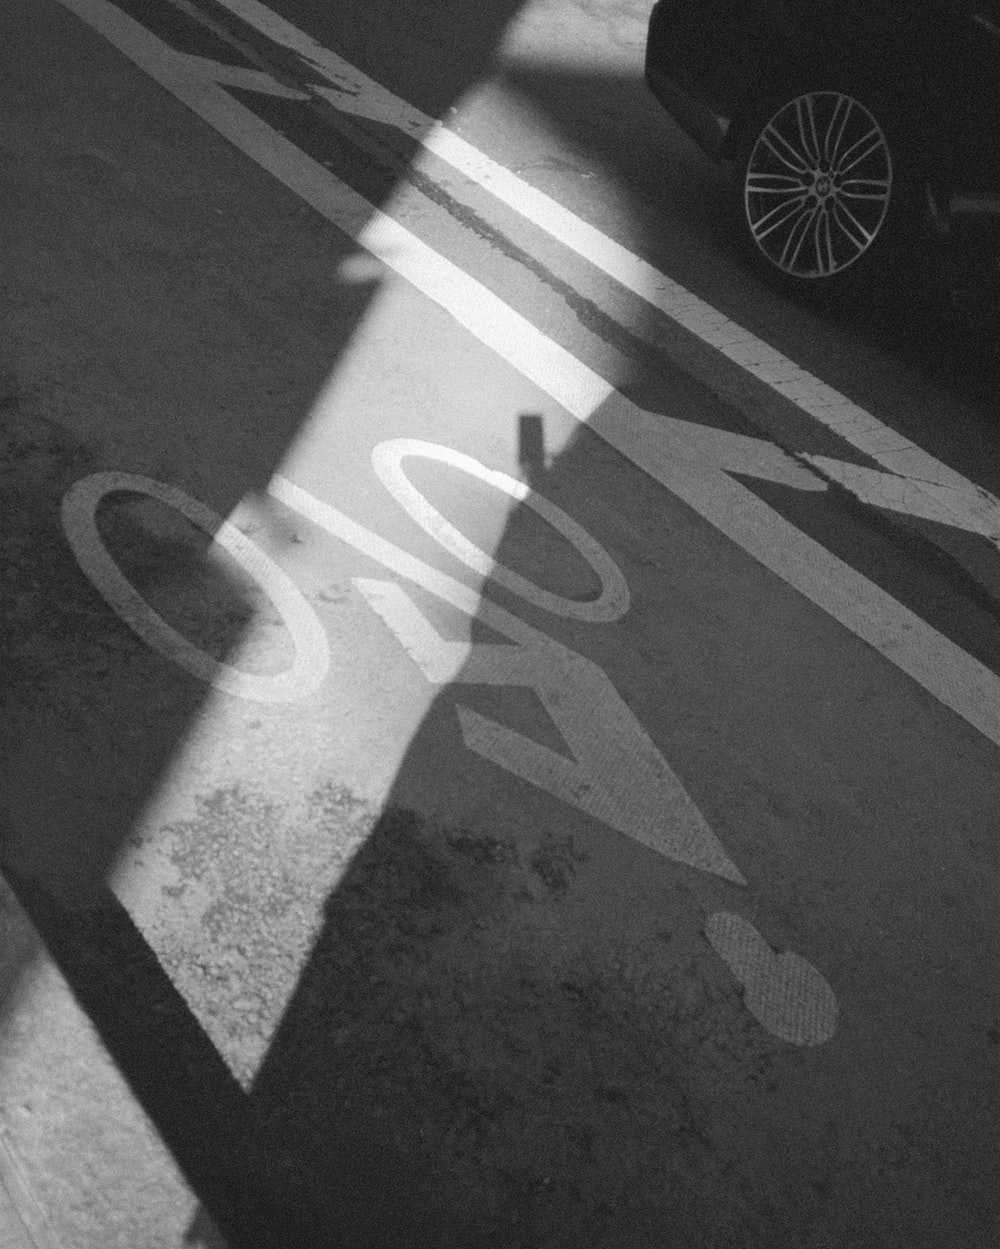 shadow of a person on a road